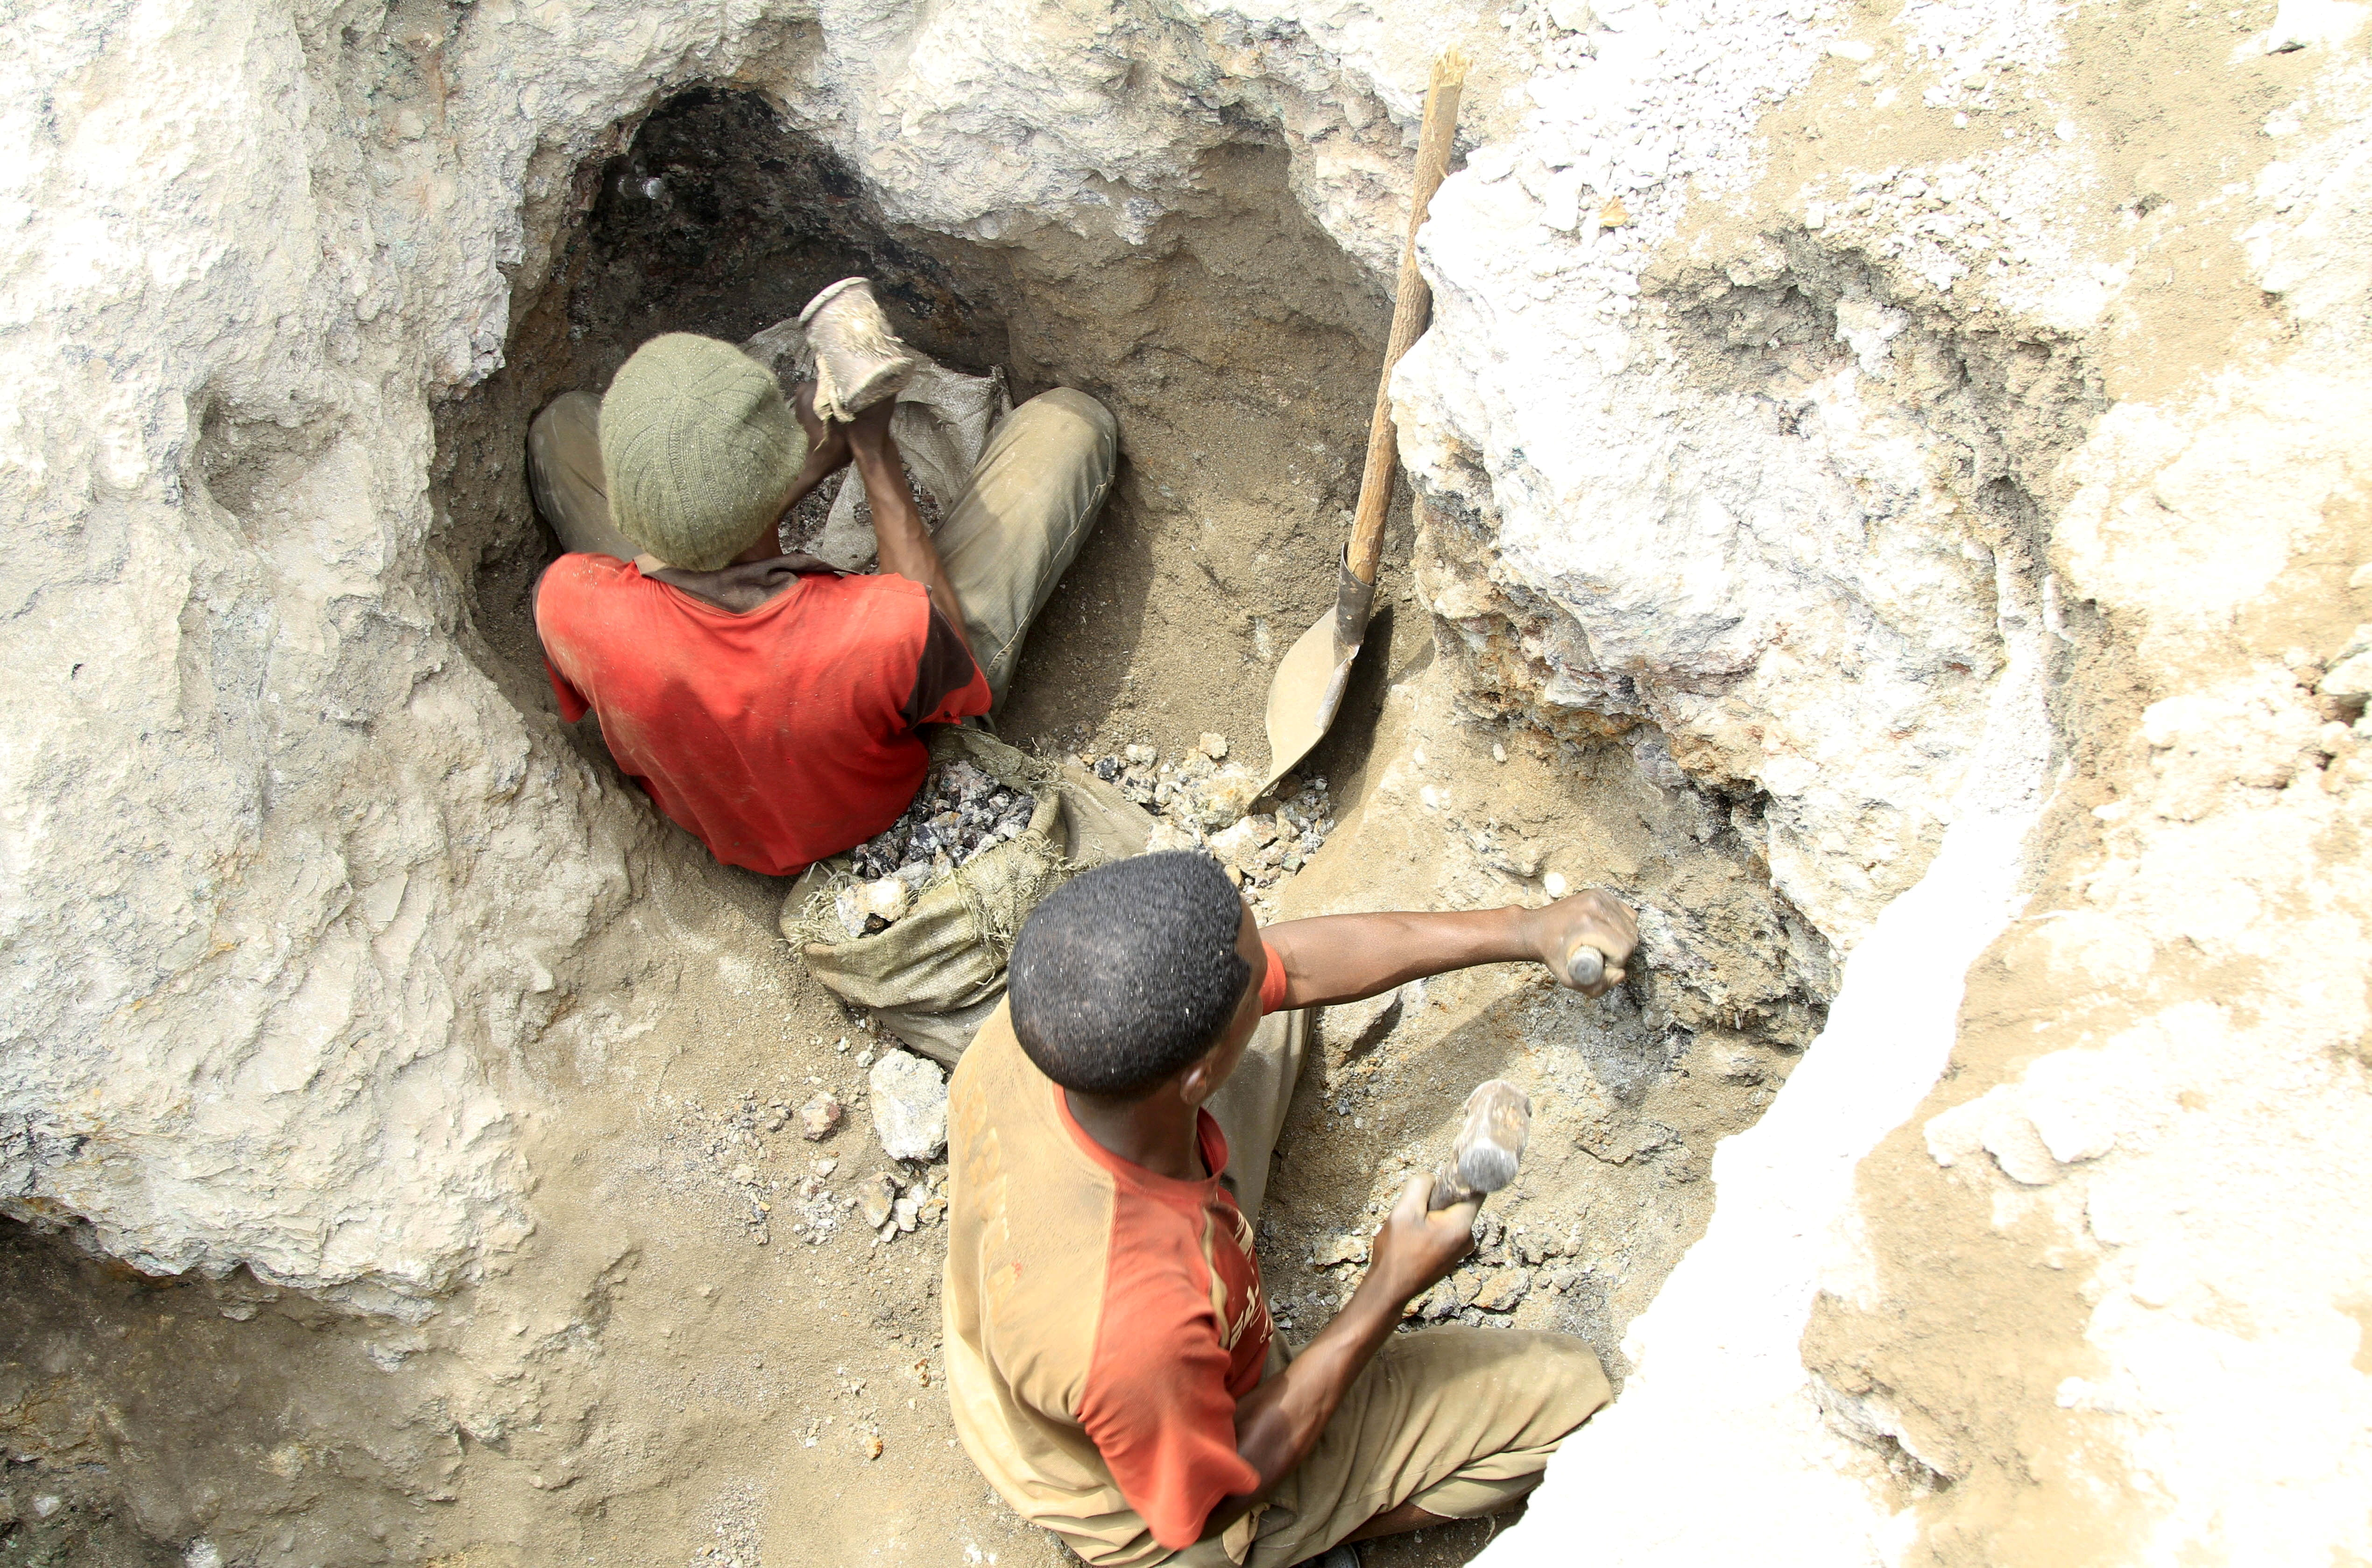 Artisanal miners work at a cobalt mine-pit in Tulwizembe, Katanga province, Democratic Republic of Congo, November 25, 2015. Picture taken November 25, 2015. REUTERS/Kenny Katombe//File Photo